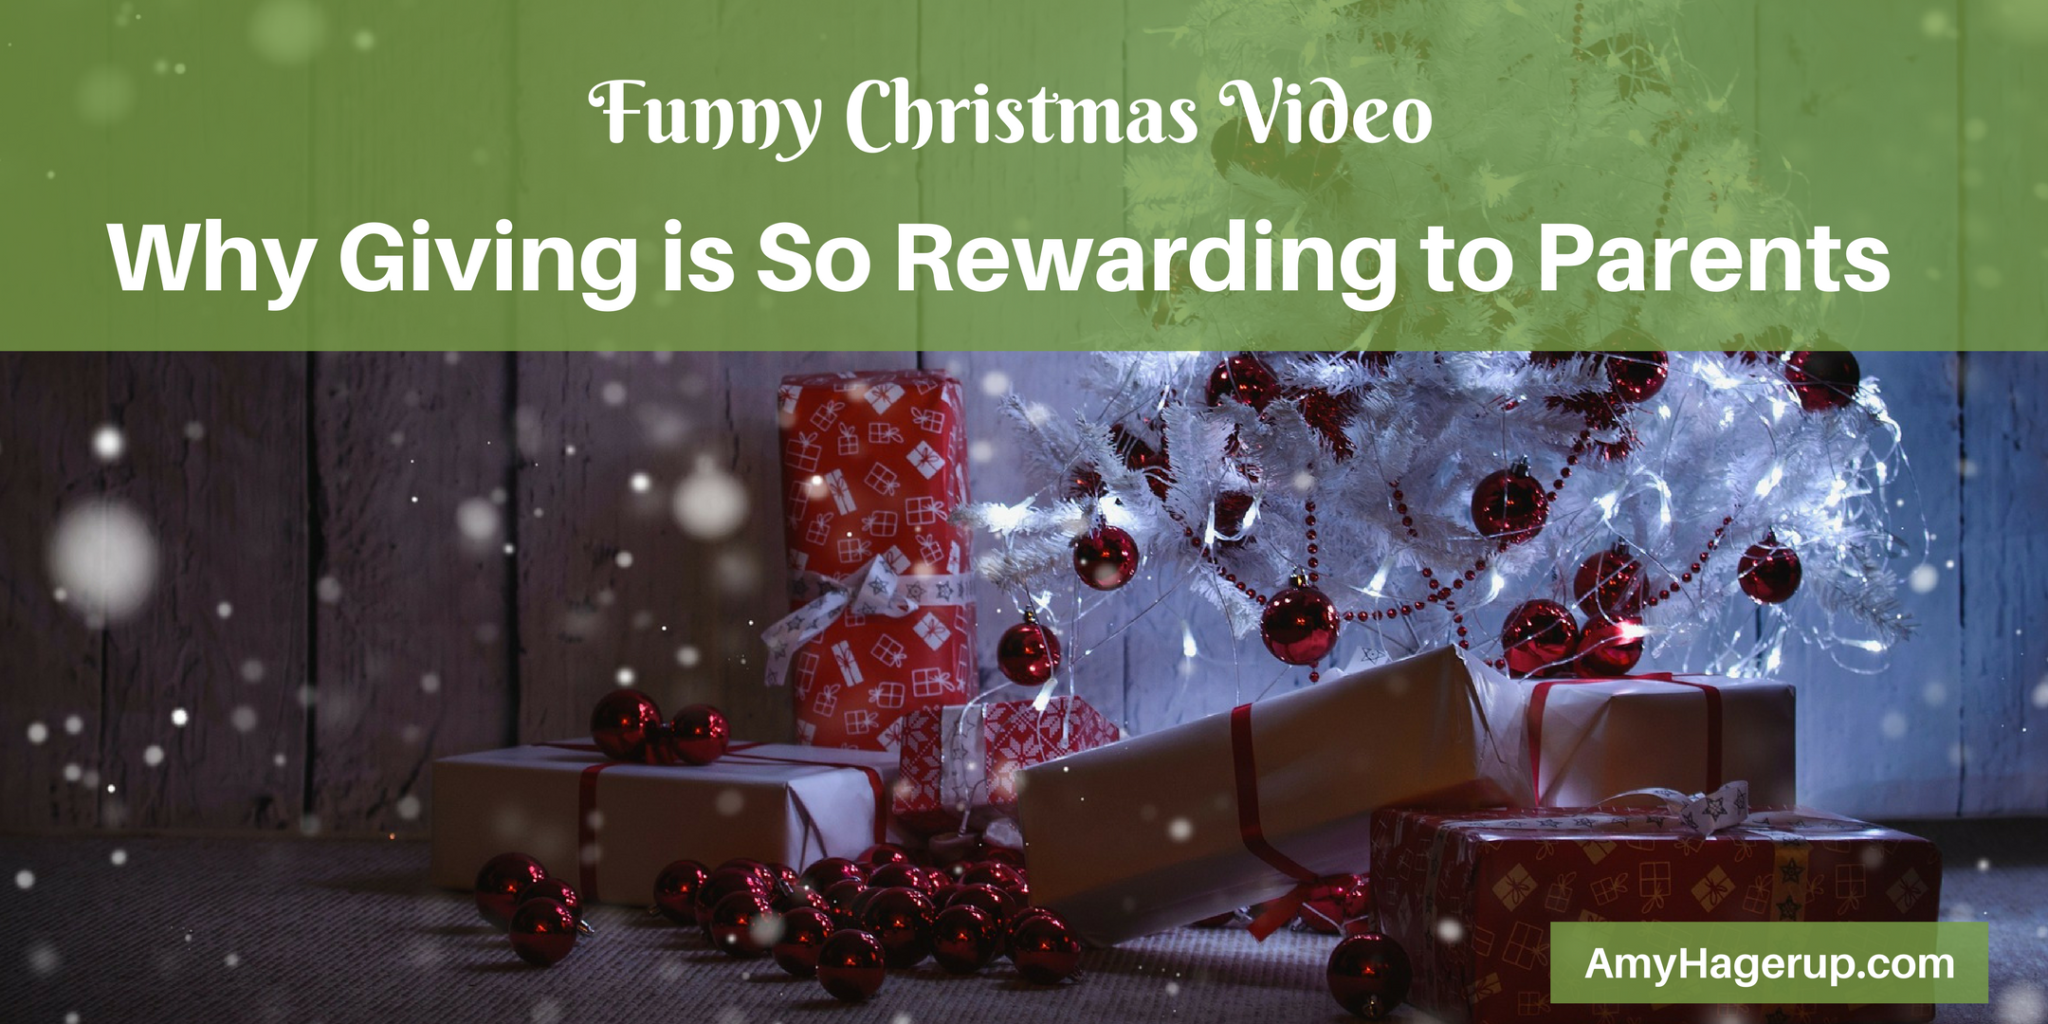 Check out this funny Christmas video and you will see why parents love to give to their children.